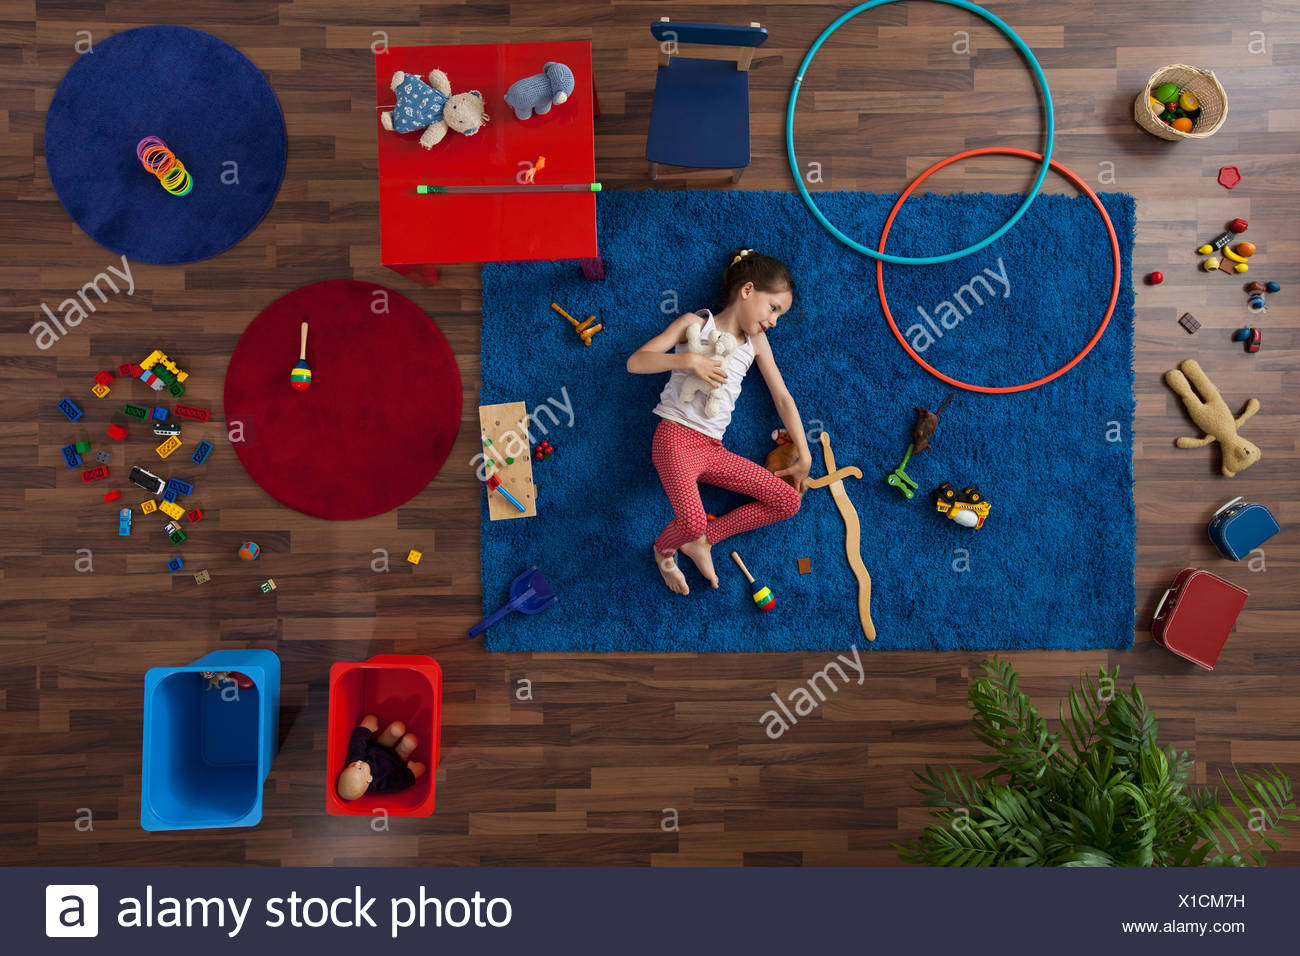 A little girl lying on a rug with toys, overhead view Stock Photo